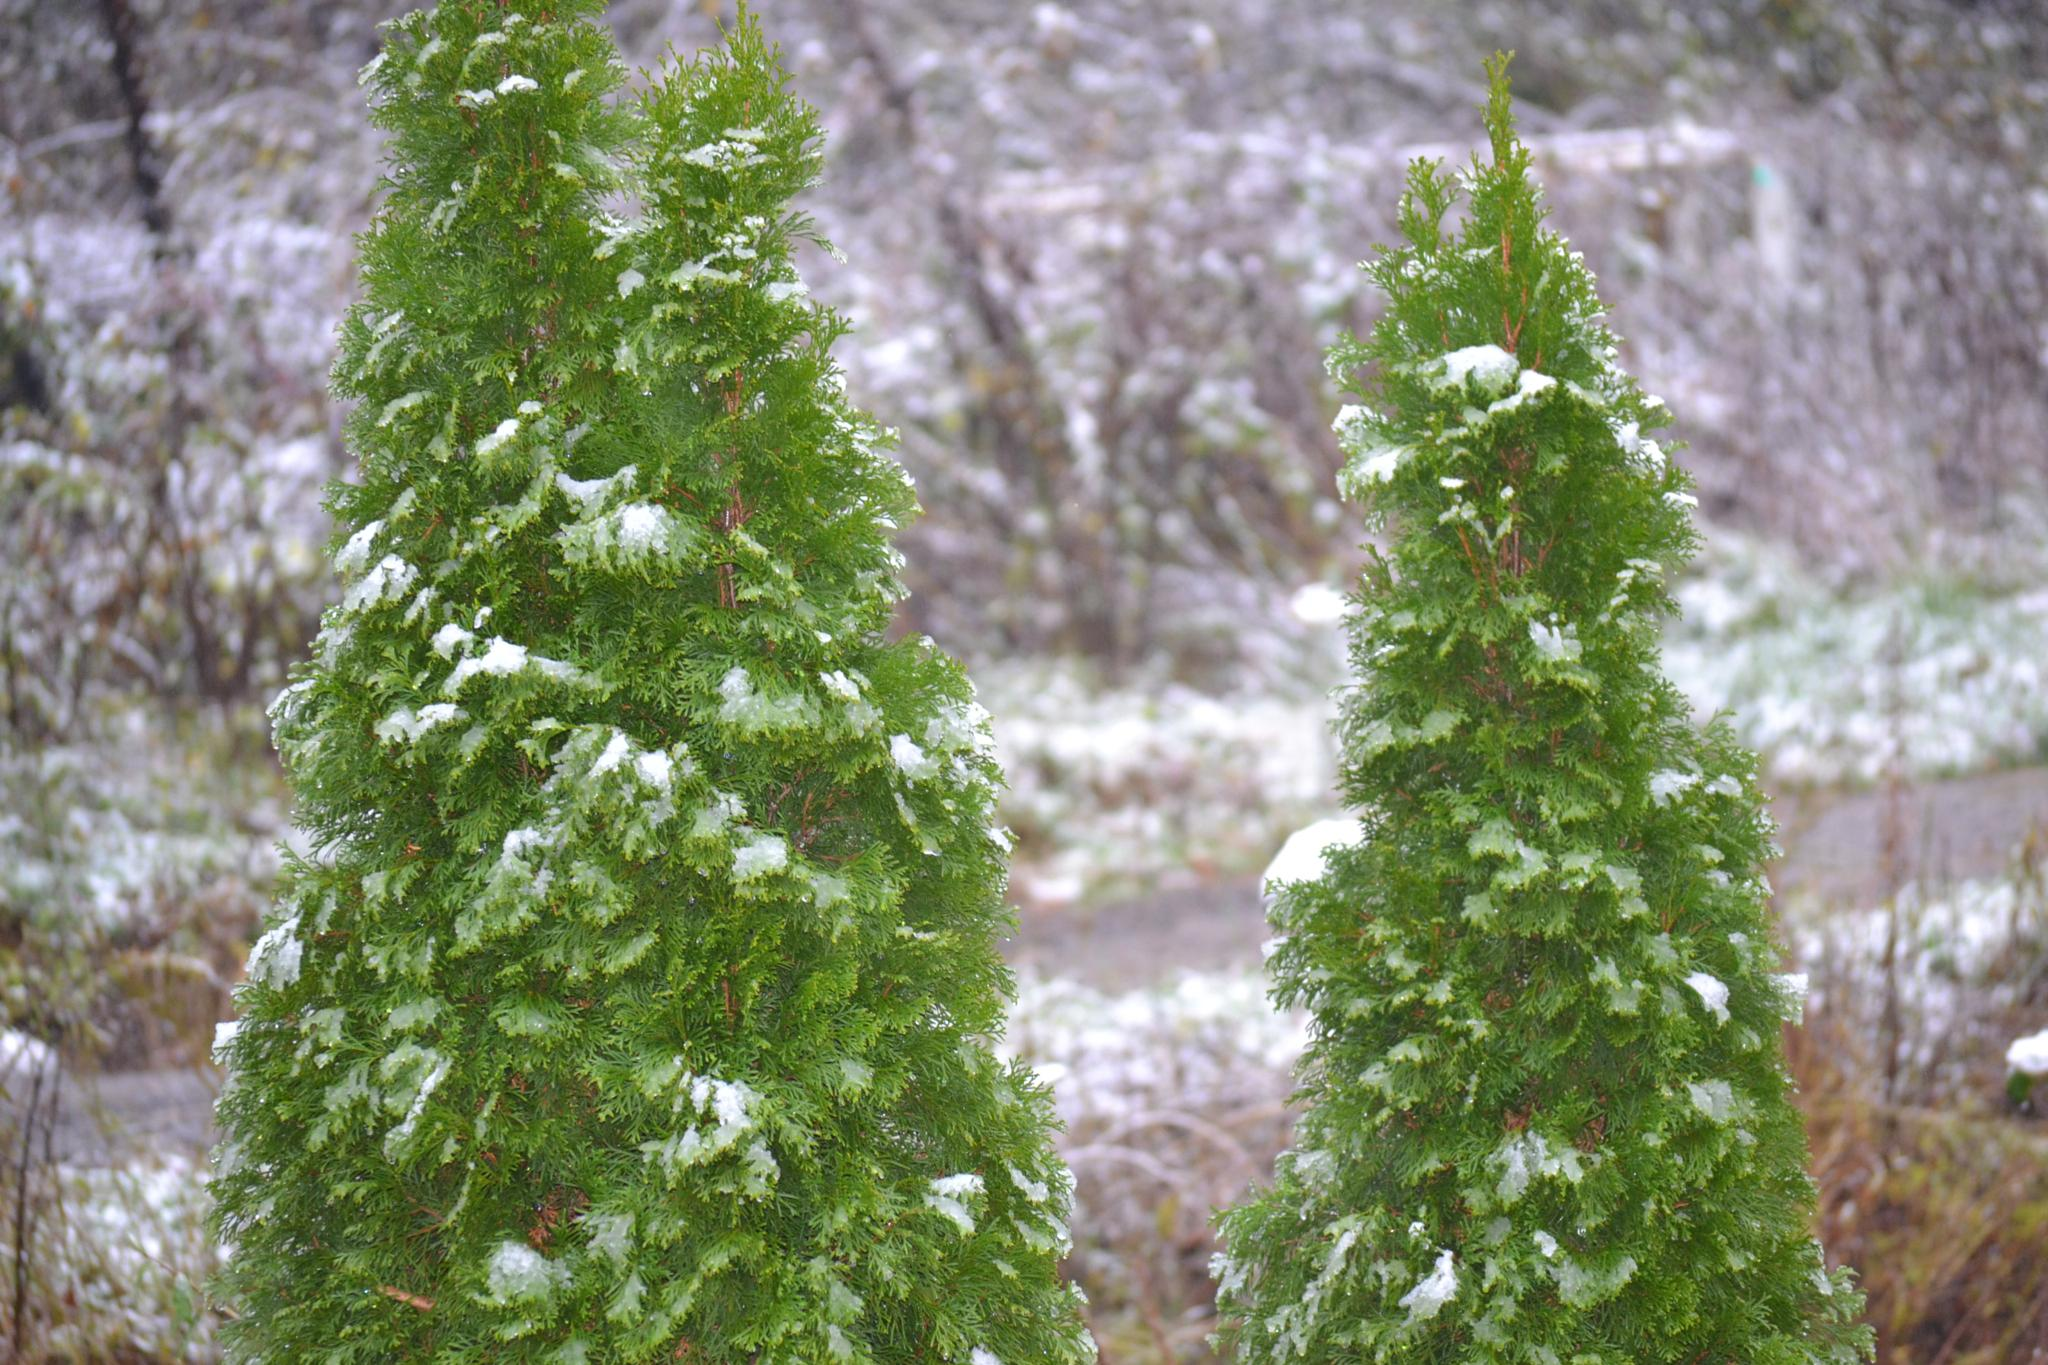 Snowy Pines by lindandarrell